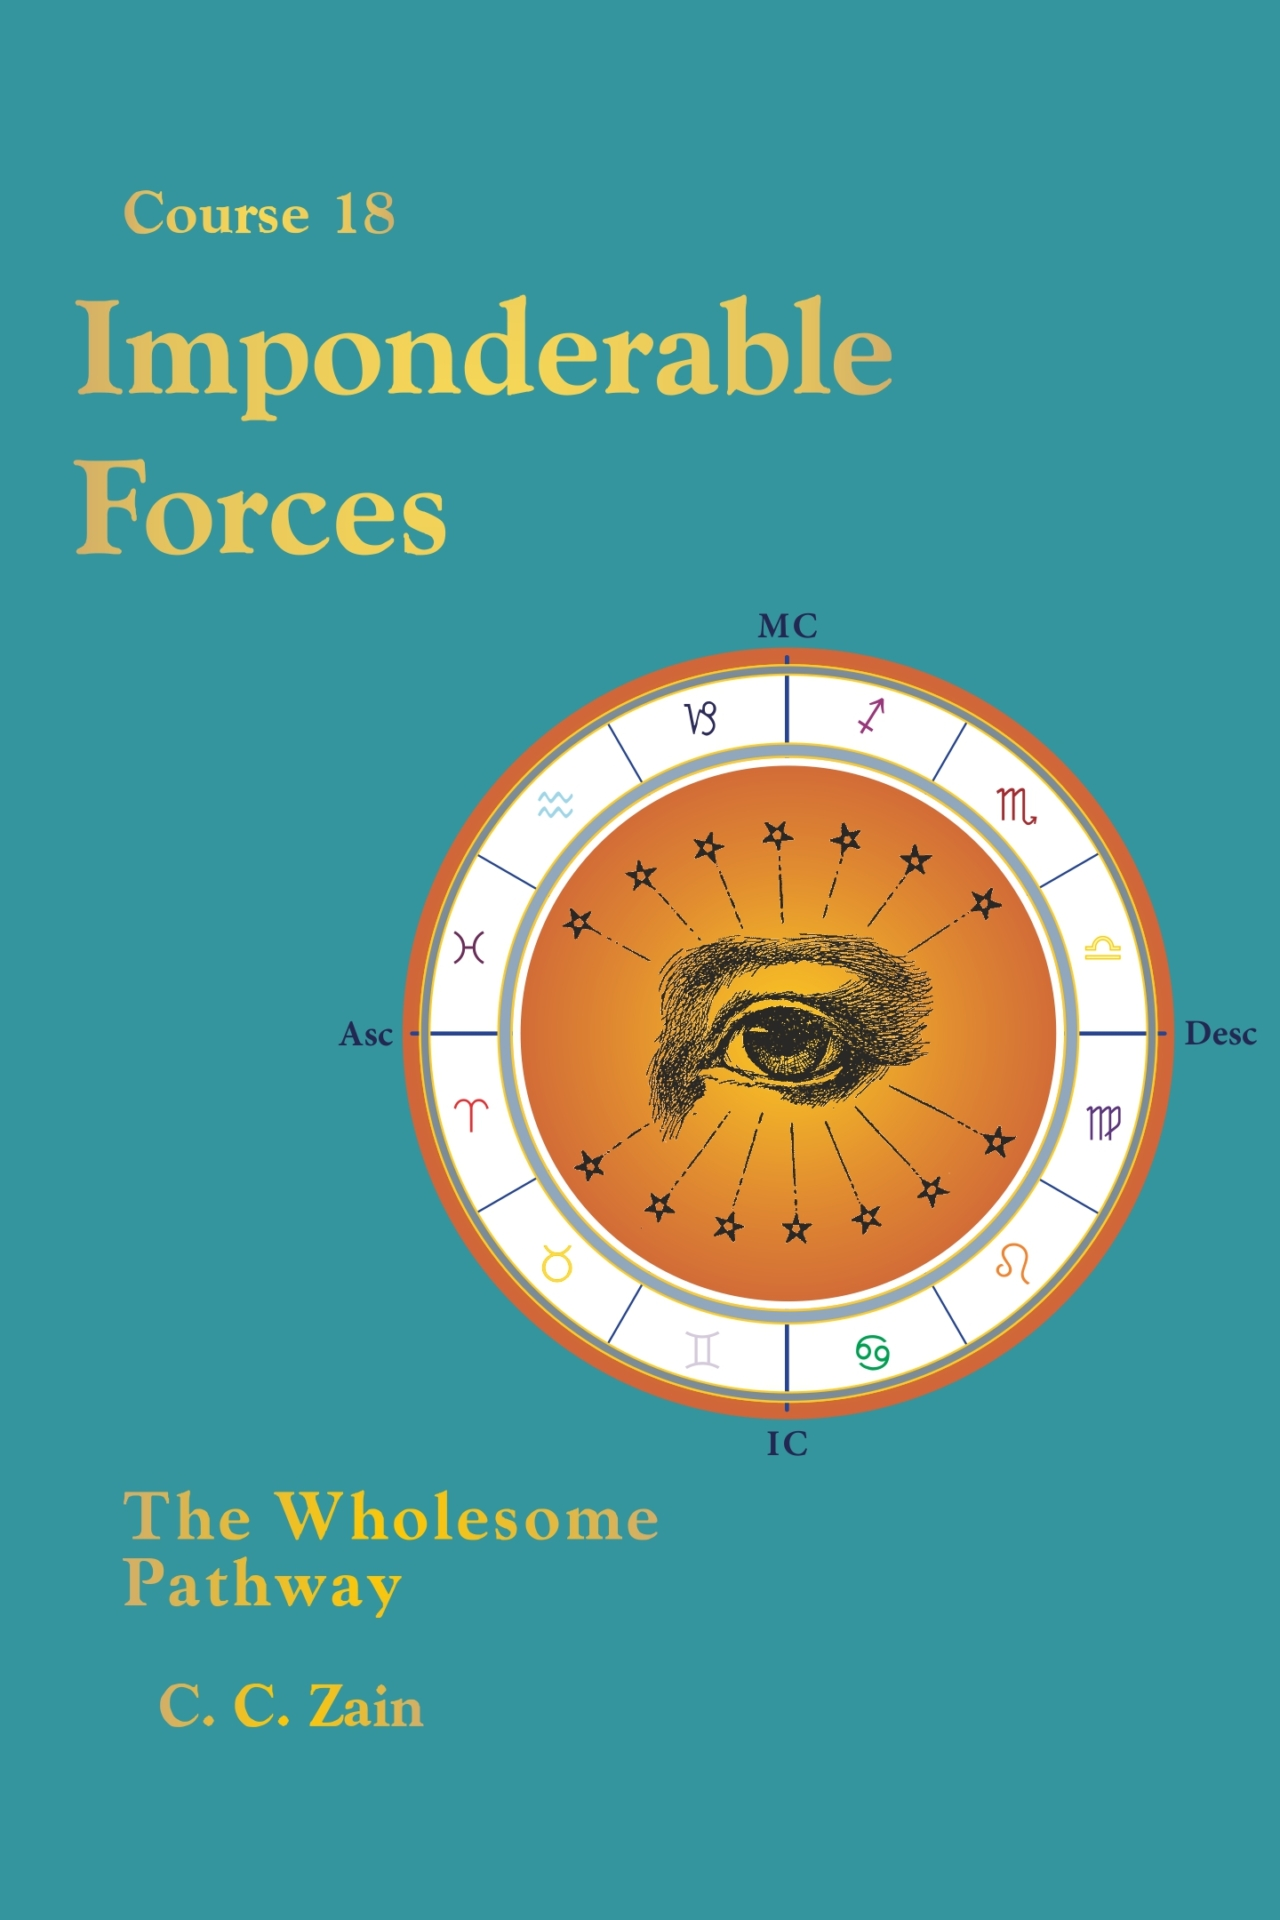 https://study.academyofhermeticarts.org/wp-content/uploads/2020/04/18_Imponderable_Forces_eBook_Cover-1280x1920.jpg